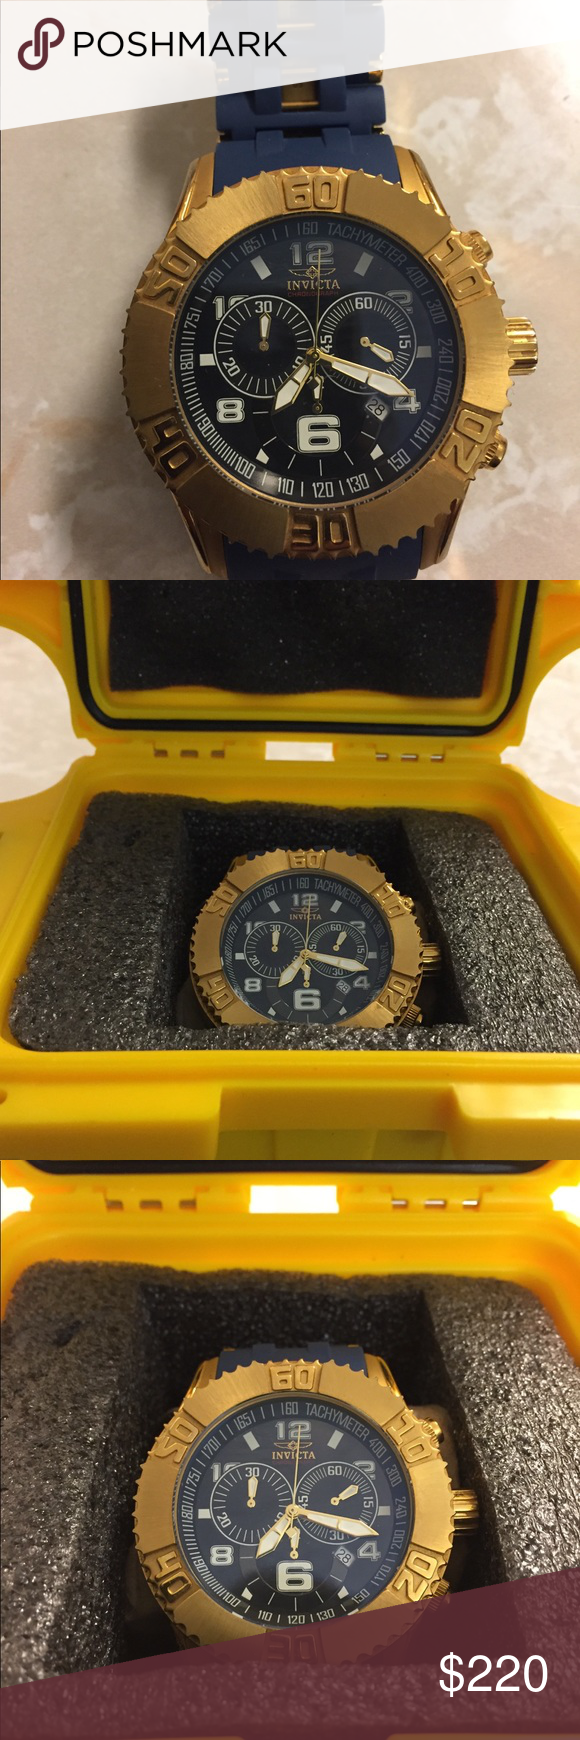 Men's Invicta Sea Spider Watch model 15244 Beautiful royal blue and gold. Worn twice. Awesome, eye-catching watch... just not his style. Maybe it's yours. Invicta Accessories Watches